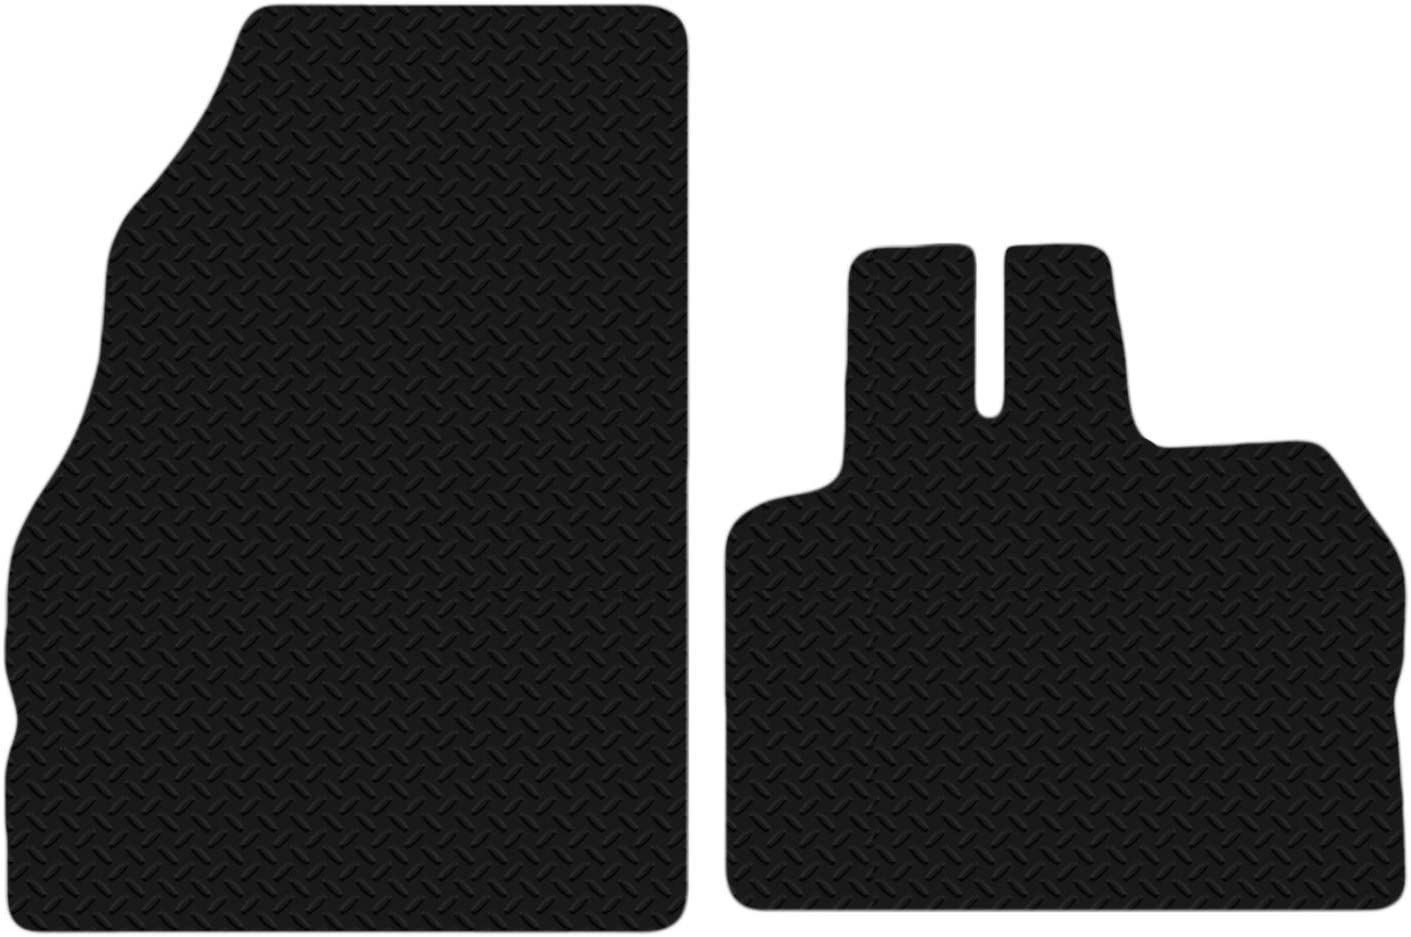 Carsio Black Floor Rubber Tailored Car Mats 3mm 4pc Set TO FIT Onwards Renault Clio 2009